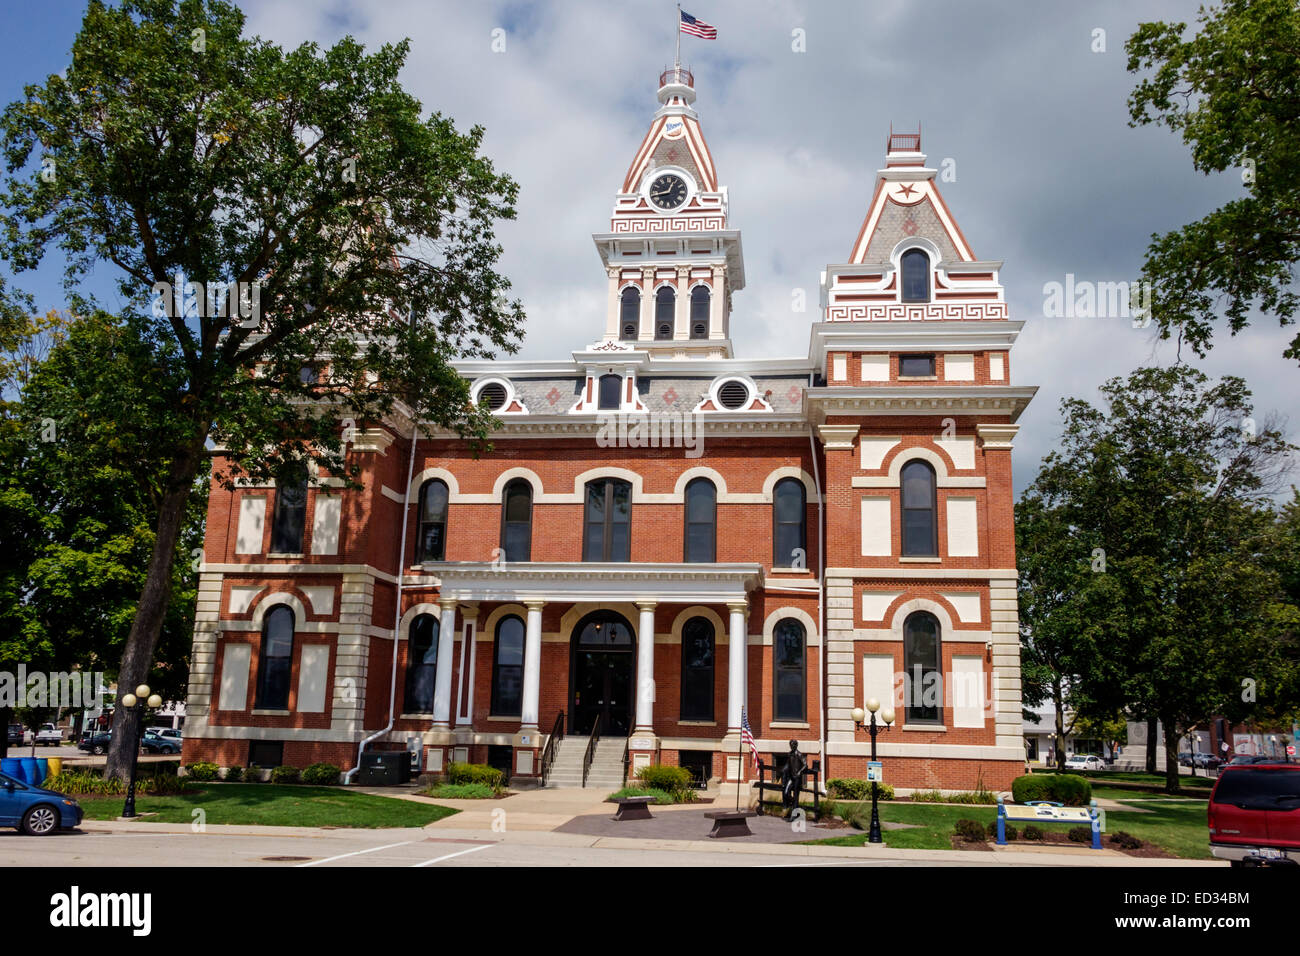 Illinois Pontiac Livingston County Courthouse front entrance Architectural style Second Empire - Stock Image